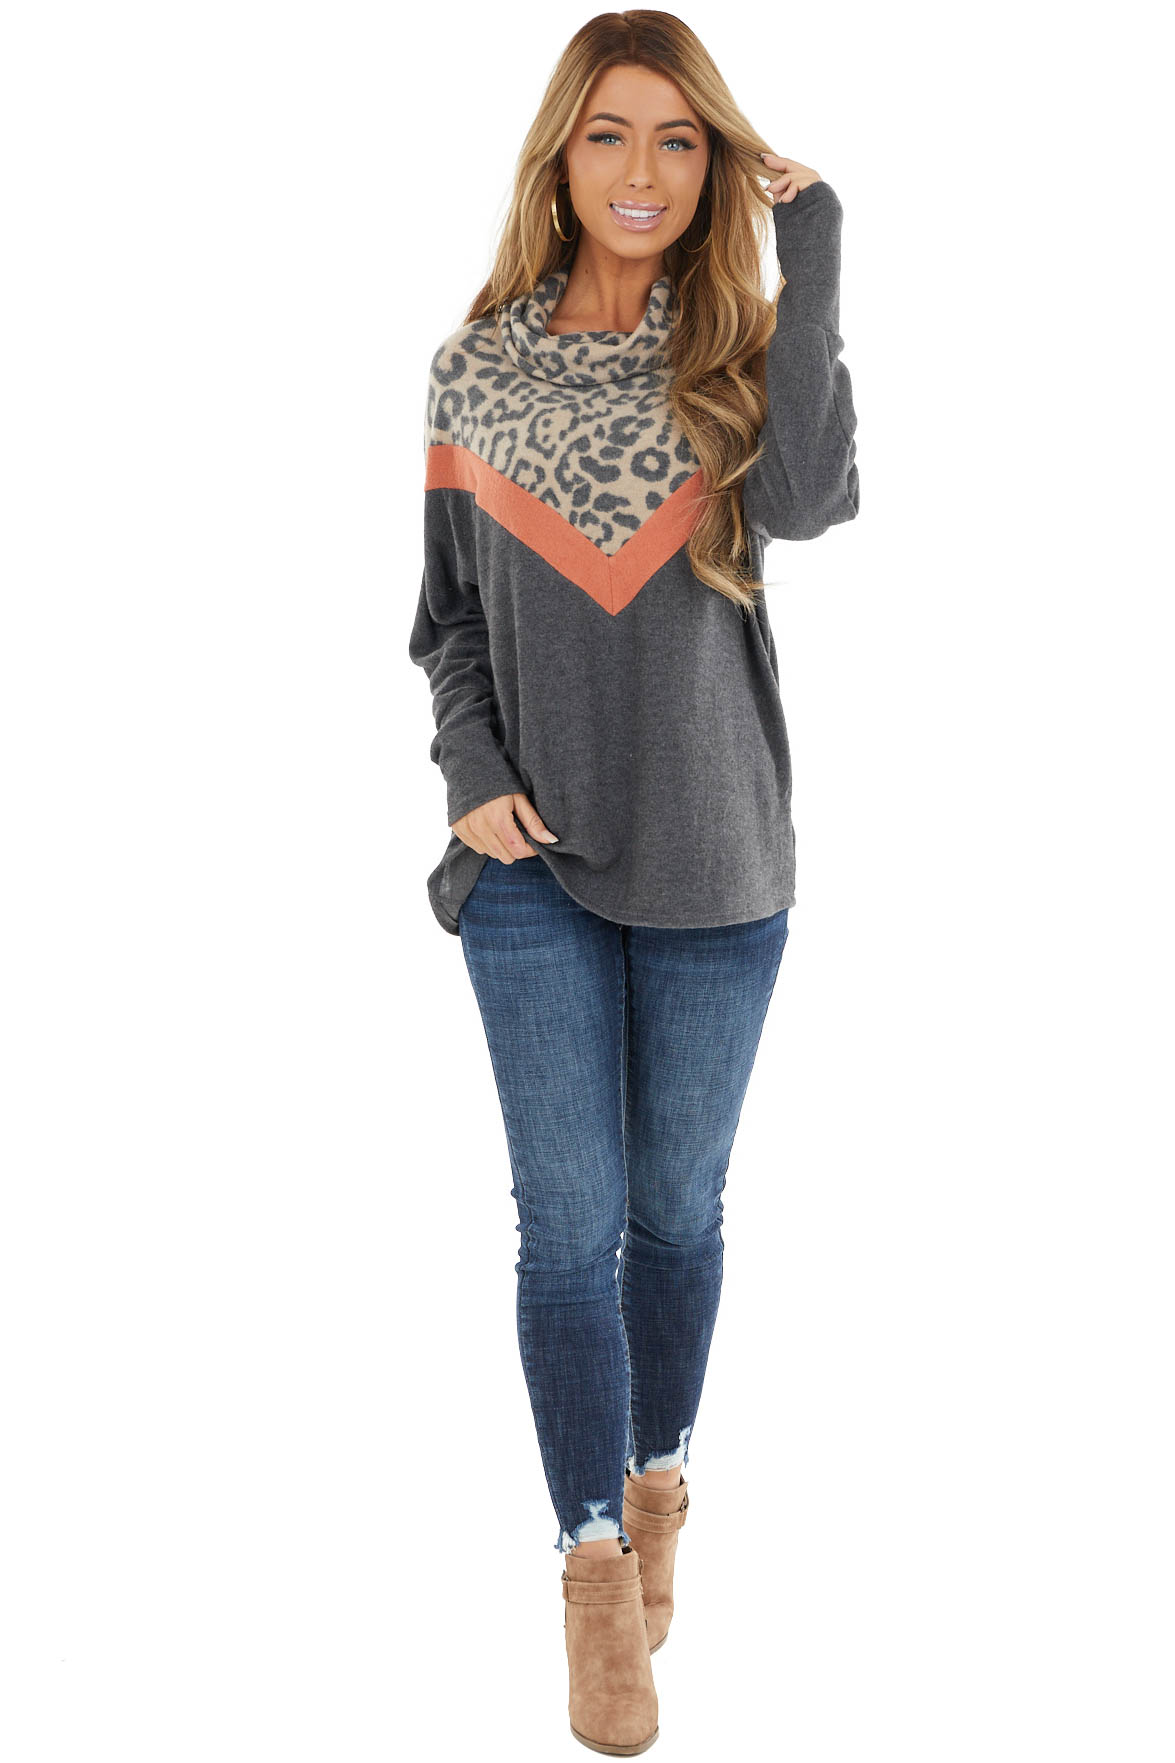 Leopard Print Cowl Neck Top with Burnt Orange Chevron Detail